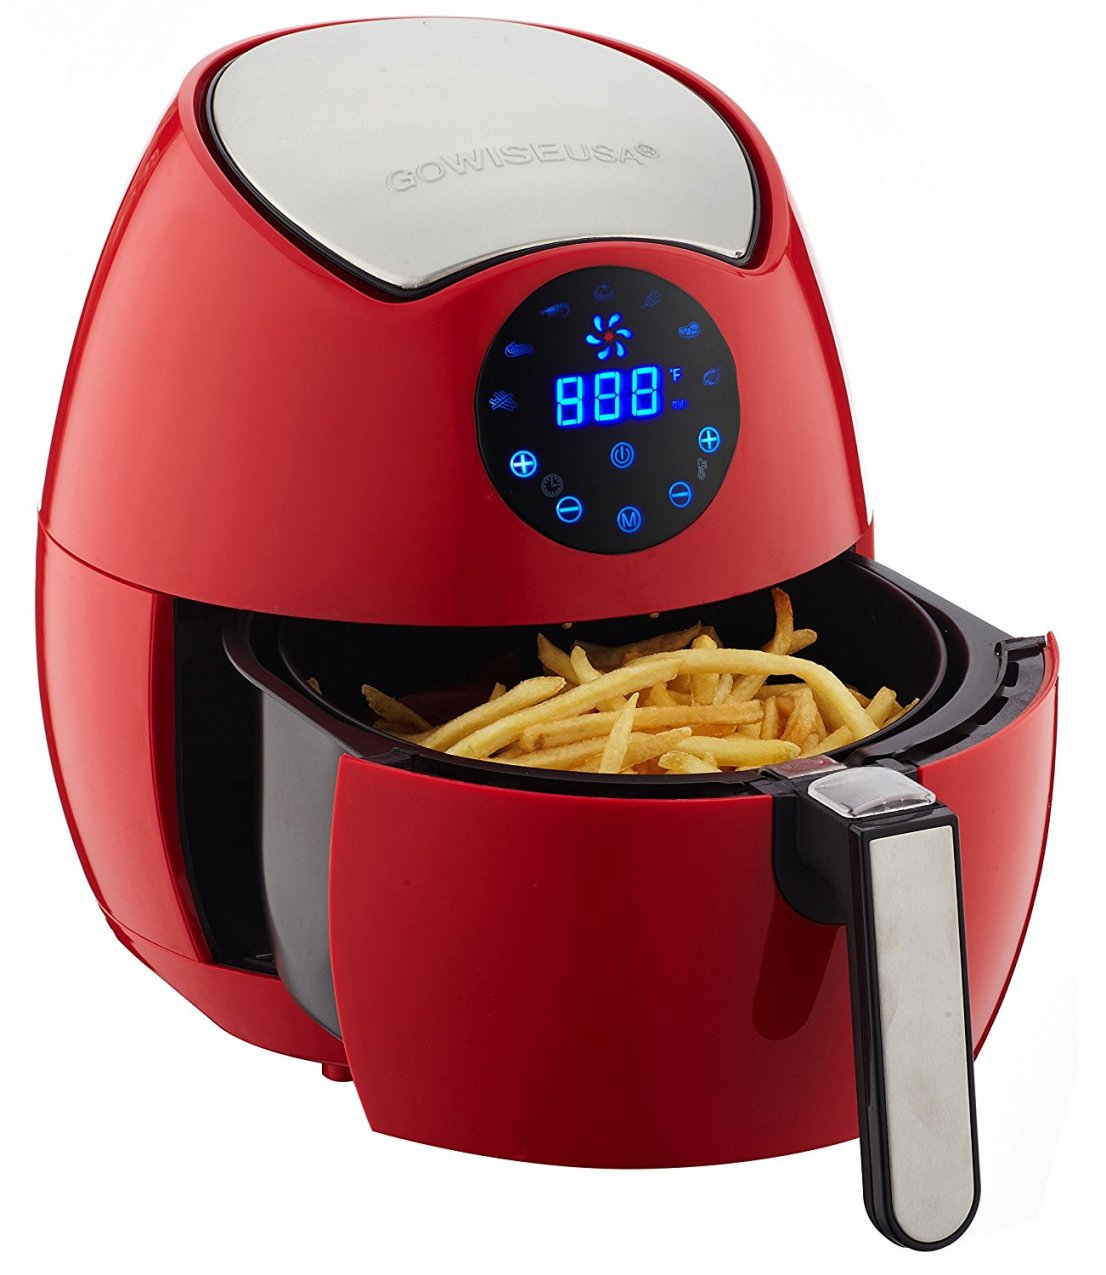 GoWISE USA Electric Digital Air Fryer